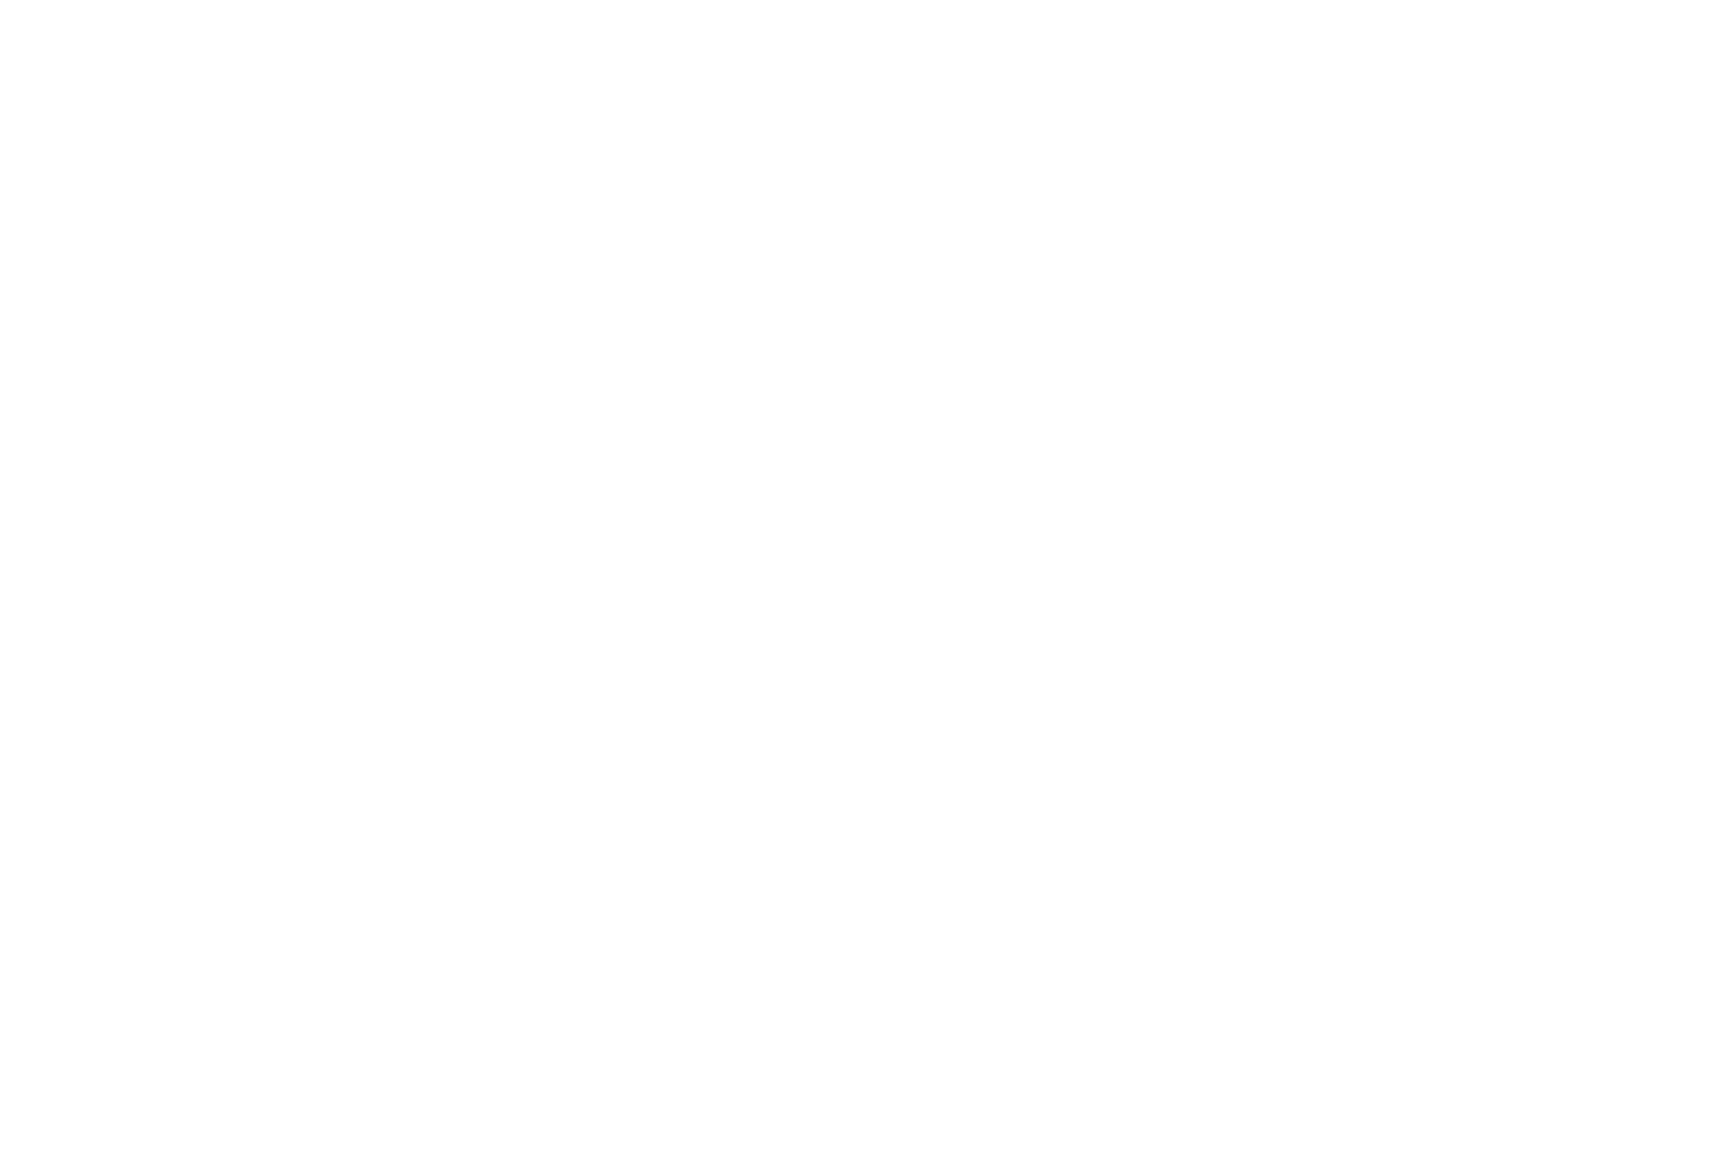 OFFICIAL SELECTION - Chicago Indie Film Awards - 2021